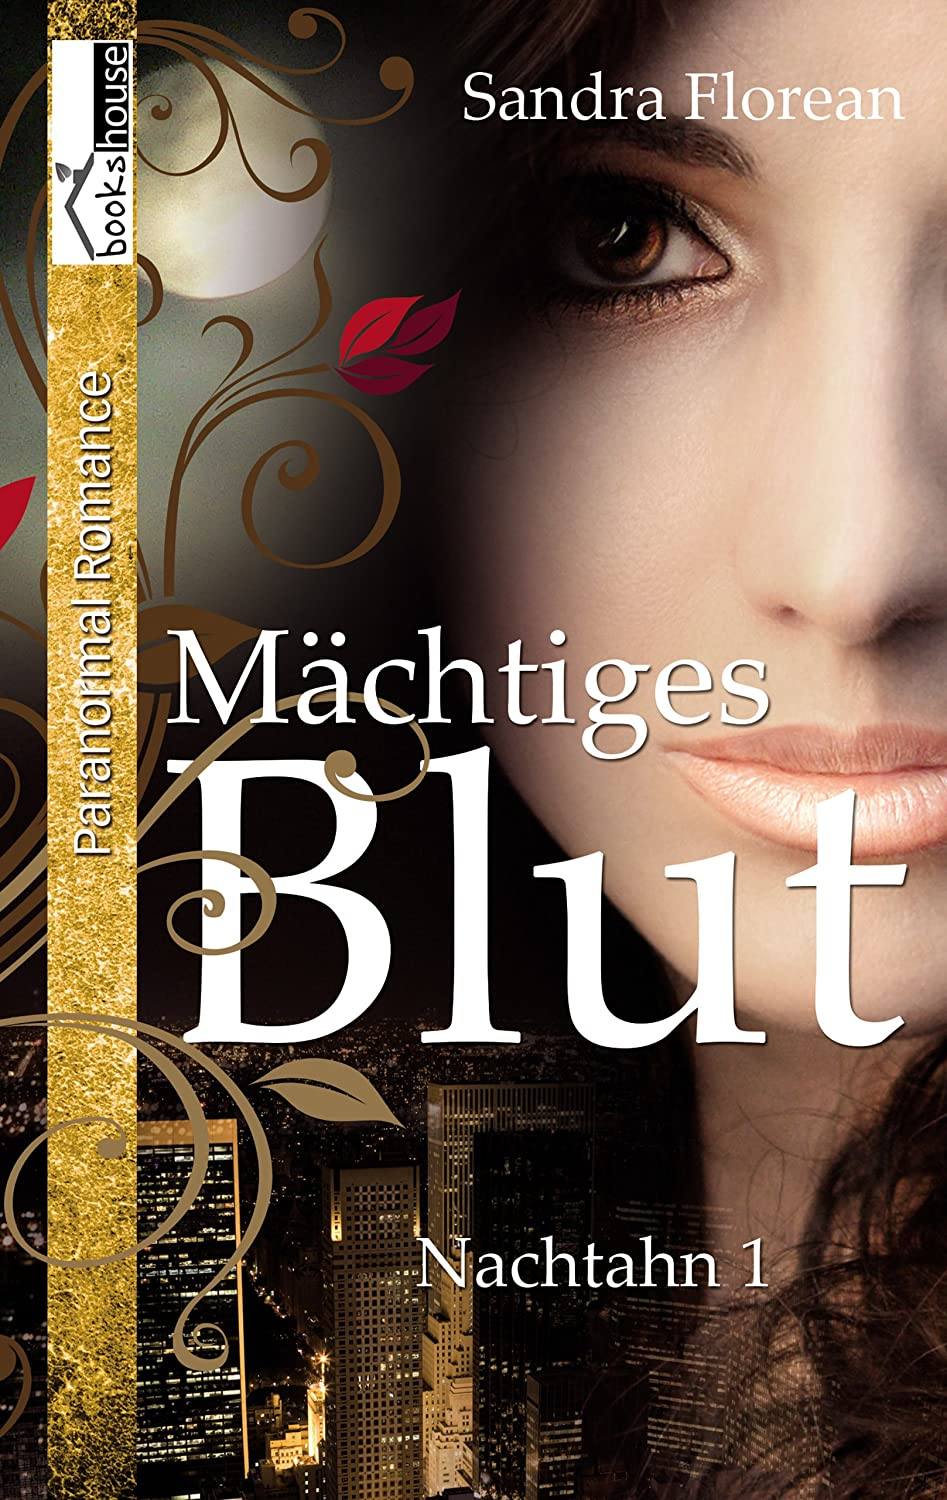 http://www.amazon.de/M%C3%A4chtiges-Blut-Nachtahn-Sandra-Florean-ebook/dp/B00JG63W1S/ref=sr_1_1?ie=UTF8&qid=1430299167&sr=8-1&keywords=Nachtahn